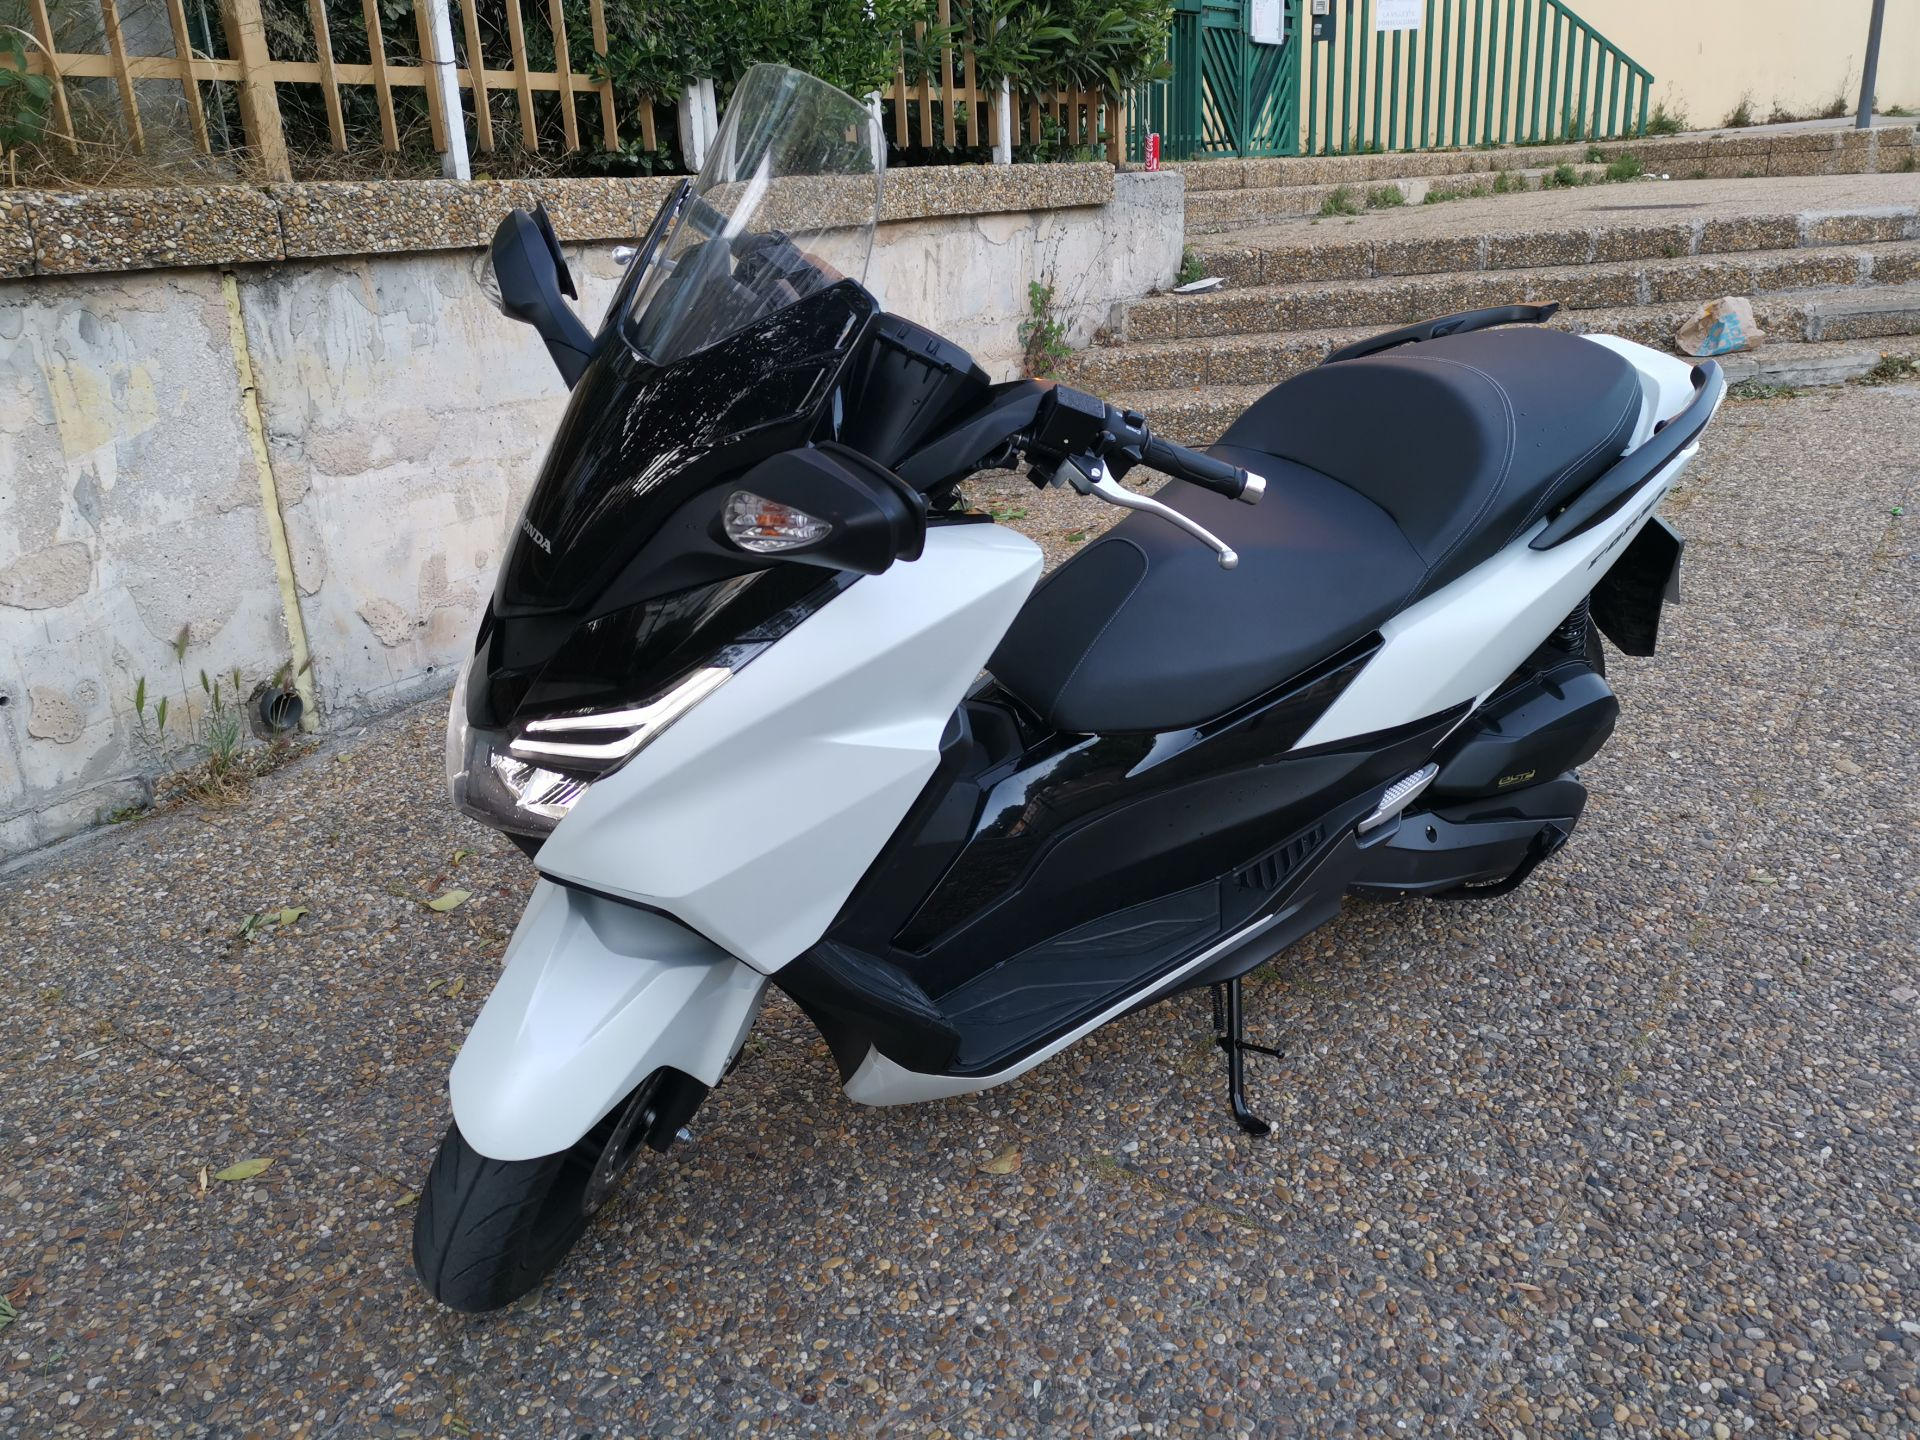 Scooter 125 cm3 occasion